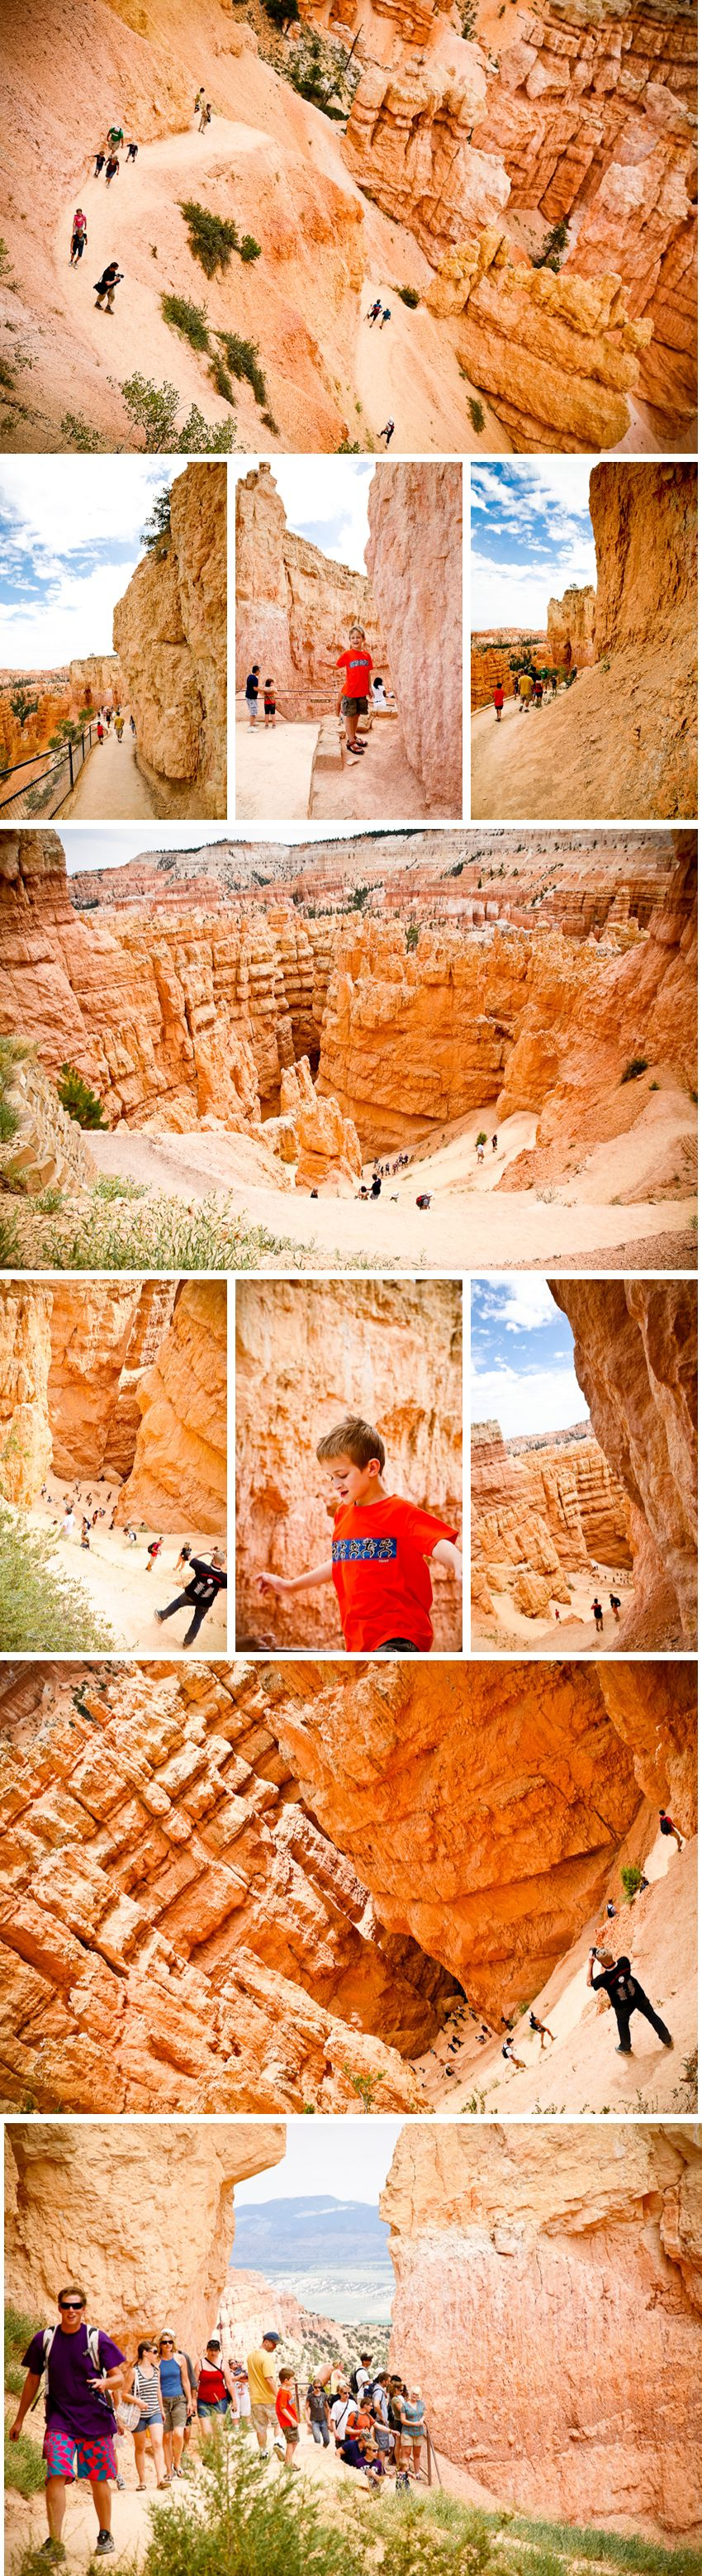 Bryce Trail collage - lwr res